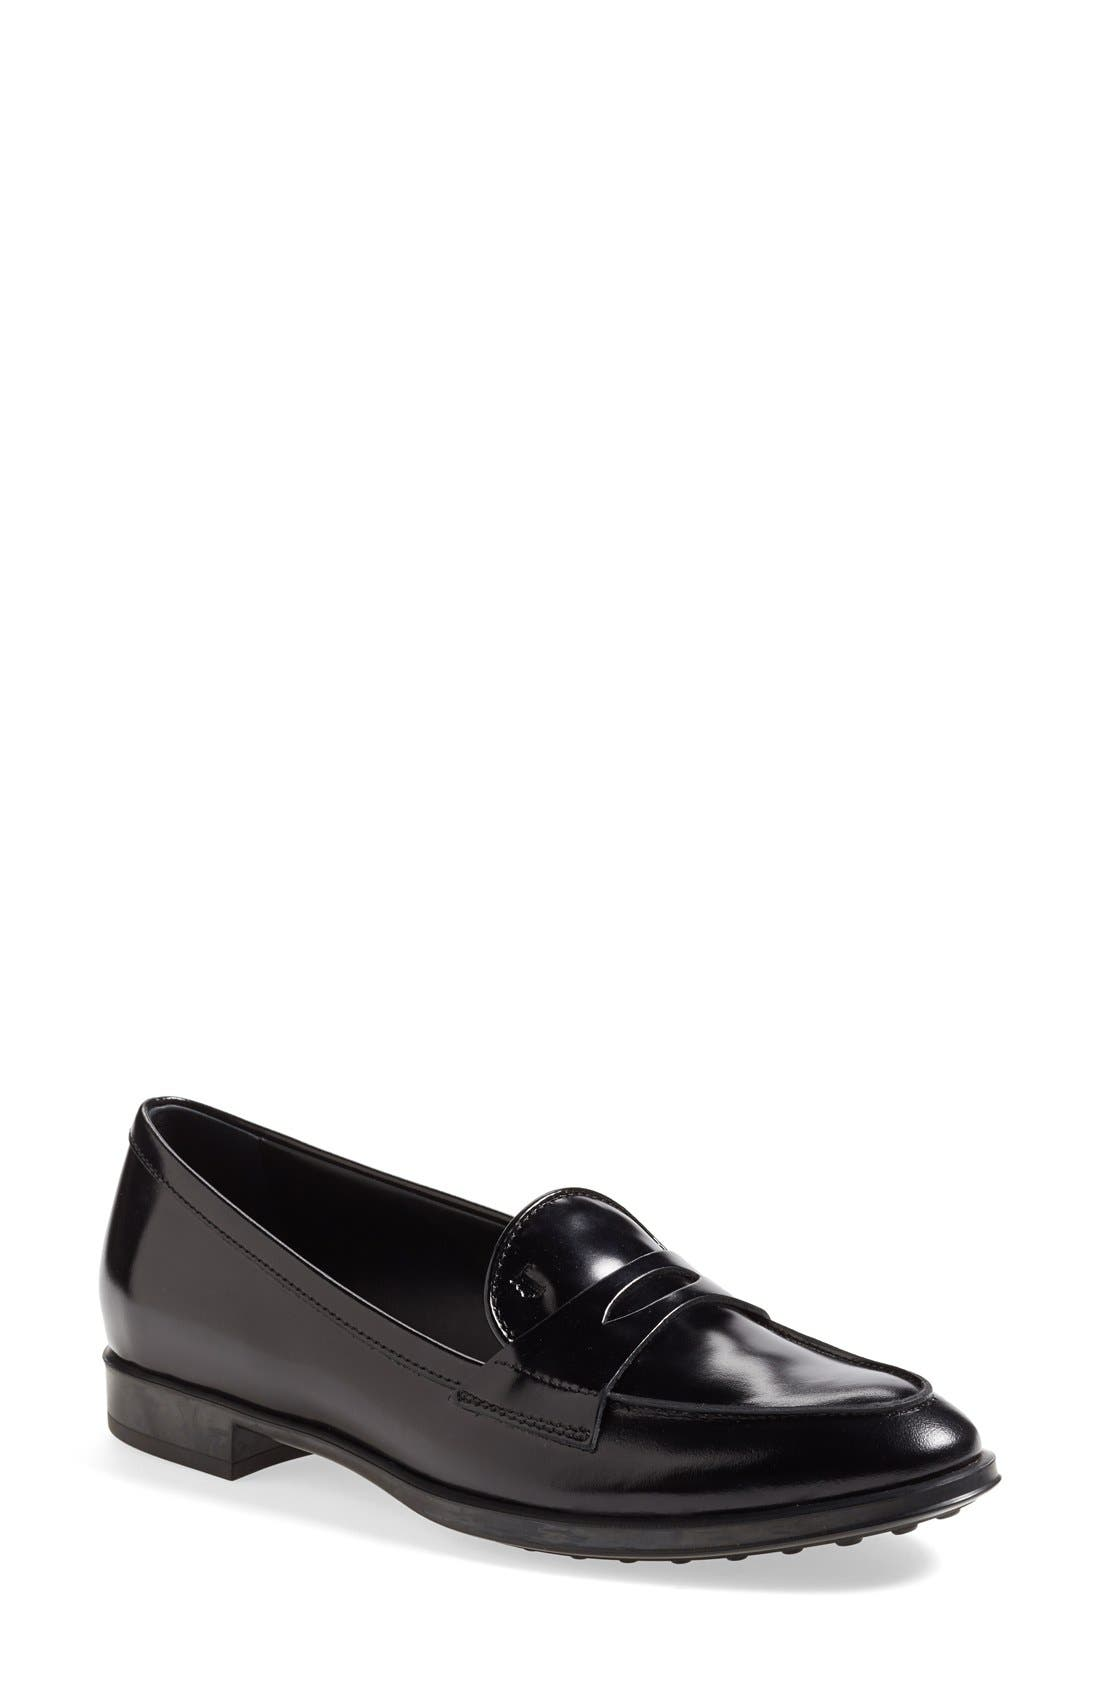 Alternate Image 1 Selected - Tod's Leather Penny Loafer (Women)